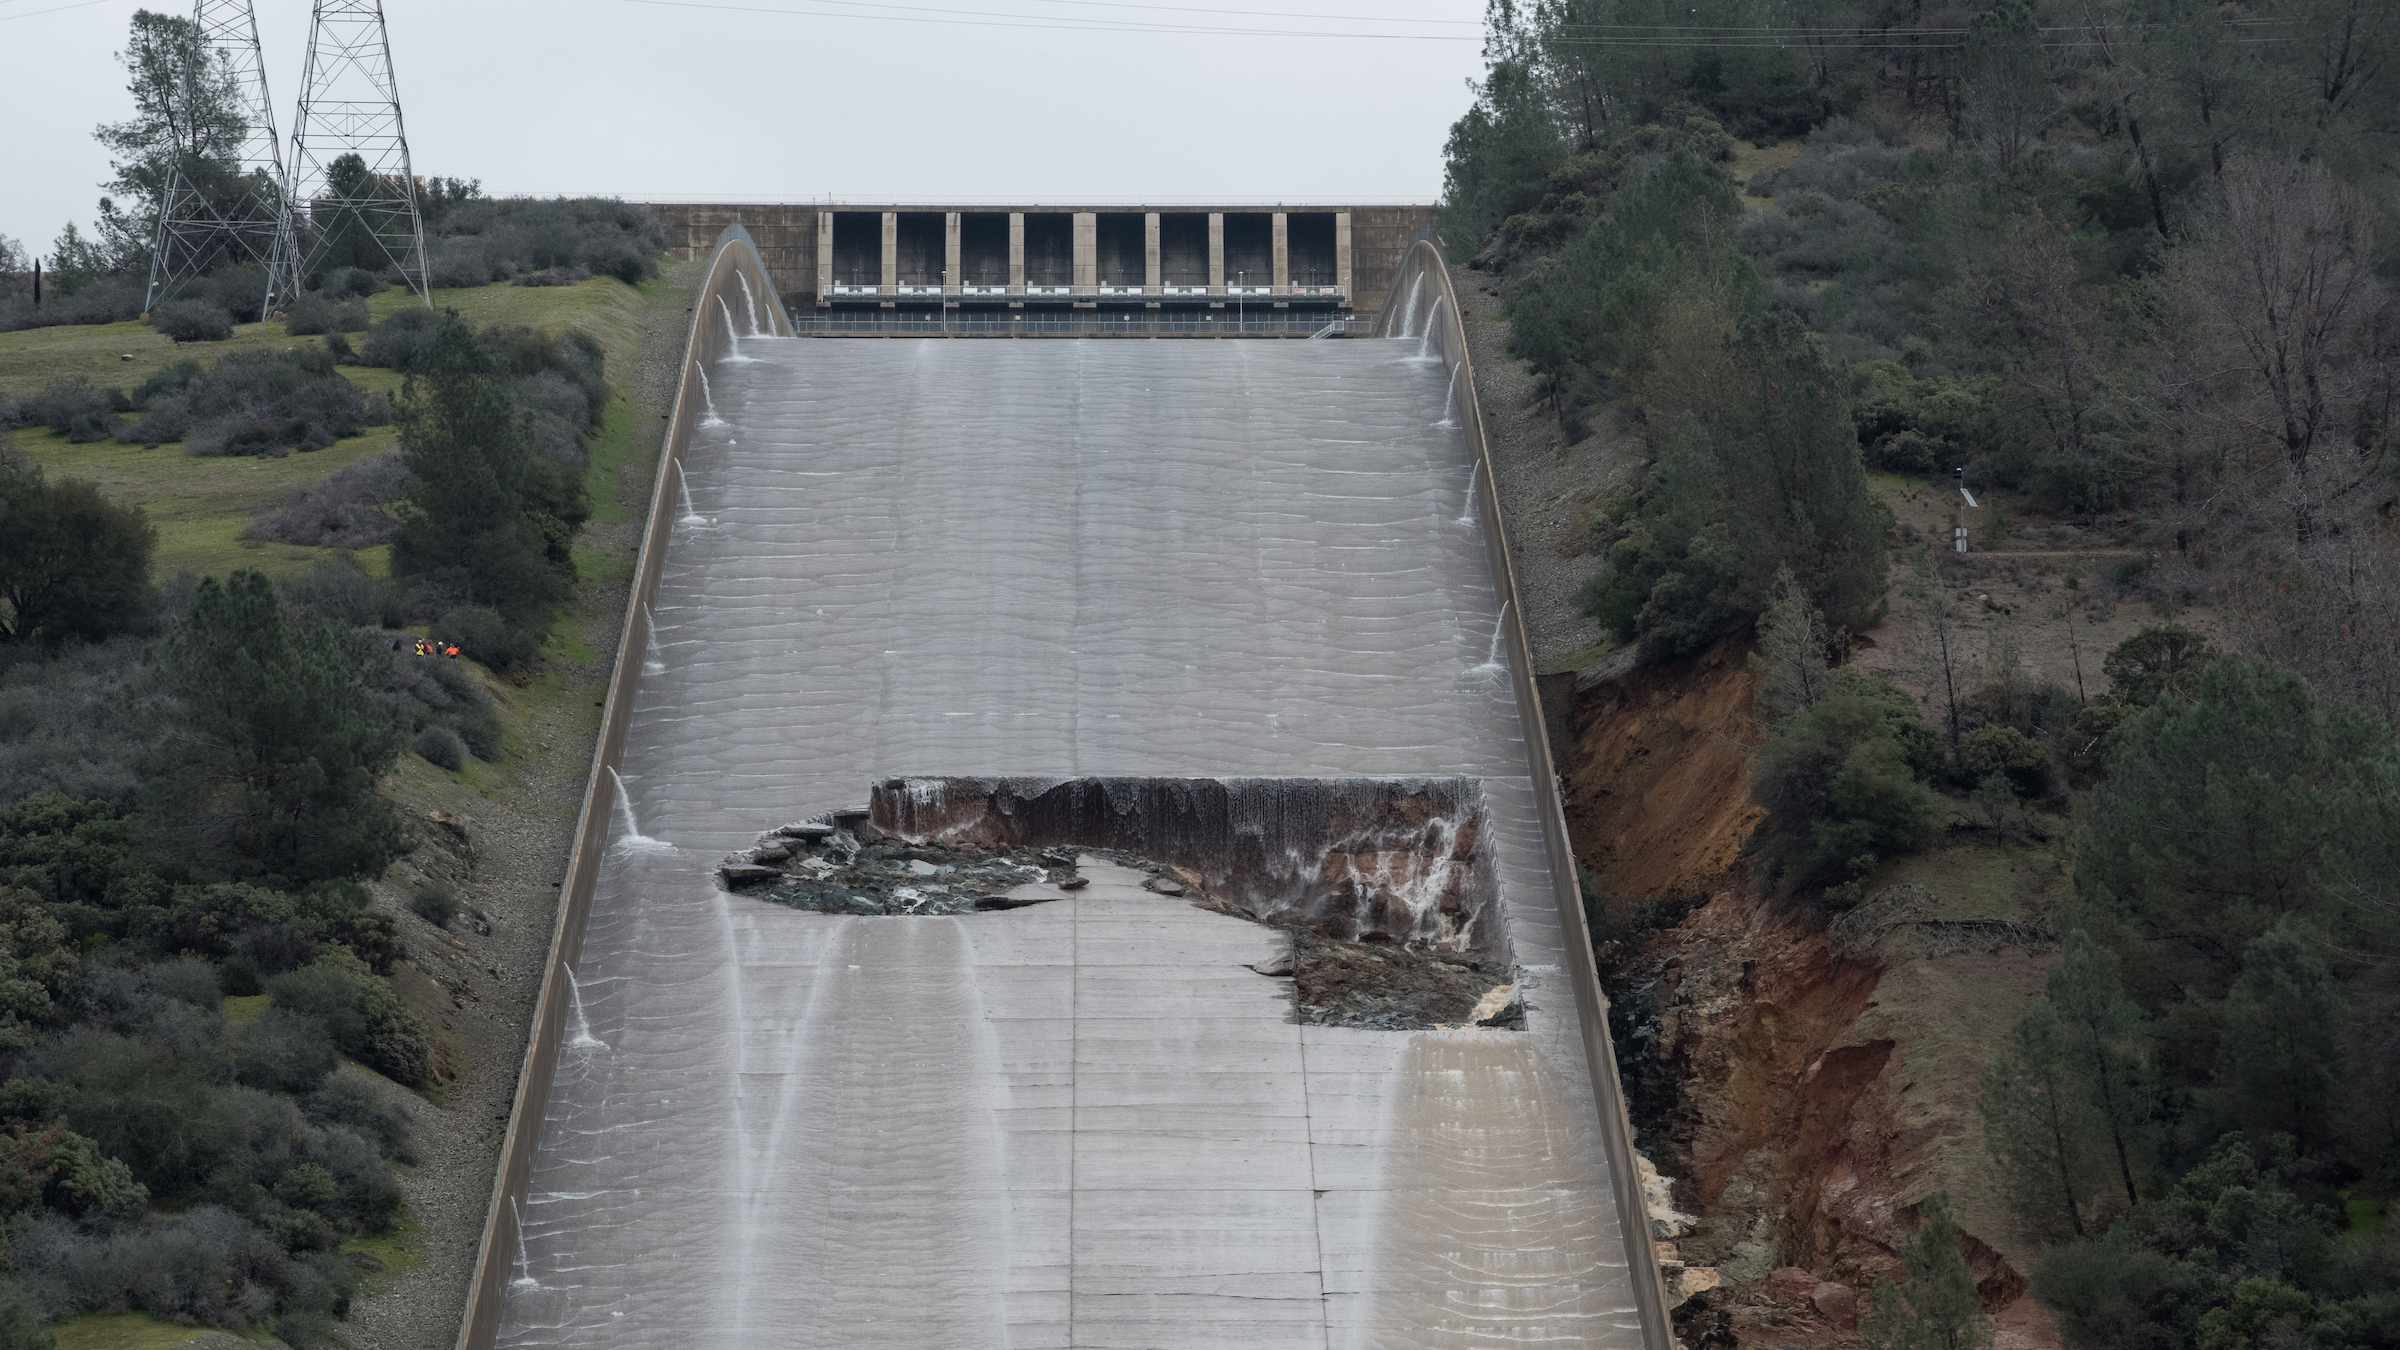 The damaged main spillway of California's Oroville Dam, the tallest in the nation, on Feb. 7, 2017. U.S. dams got a D grade in the 2017 Infrastructure Report Card released March 9, 2017, by the American Society of Civil Engineers.